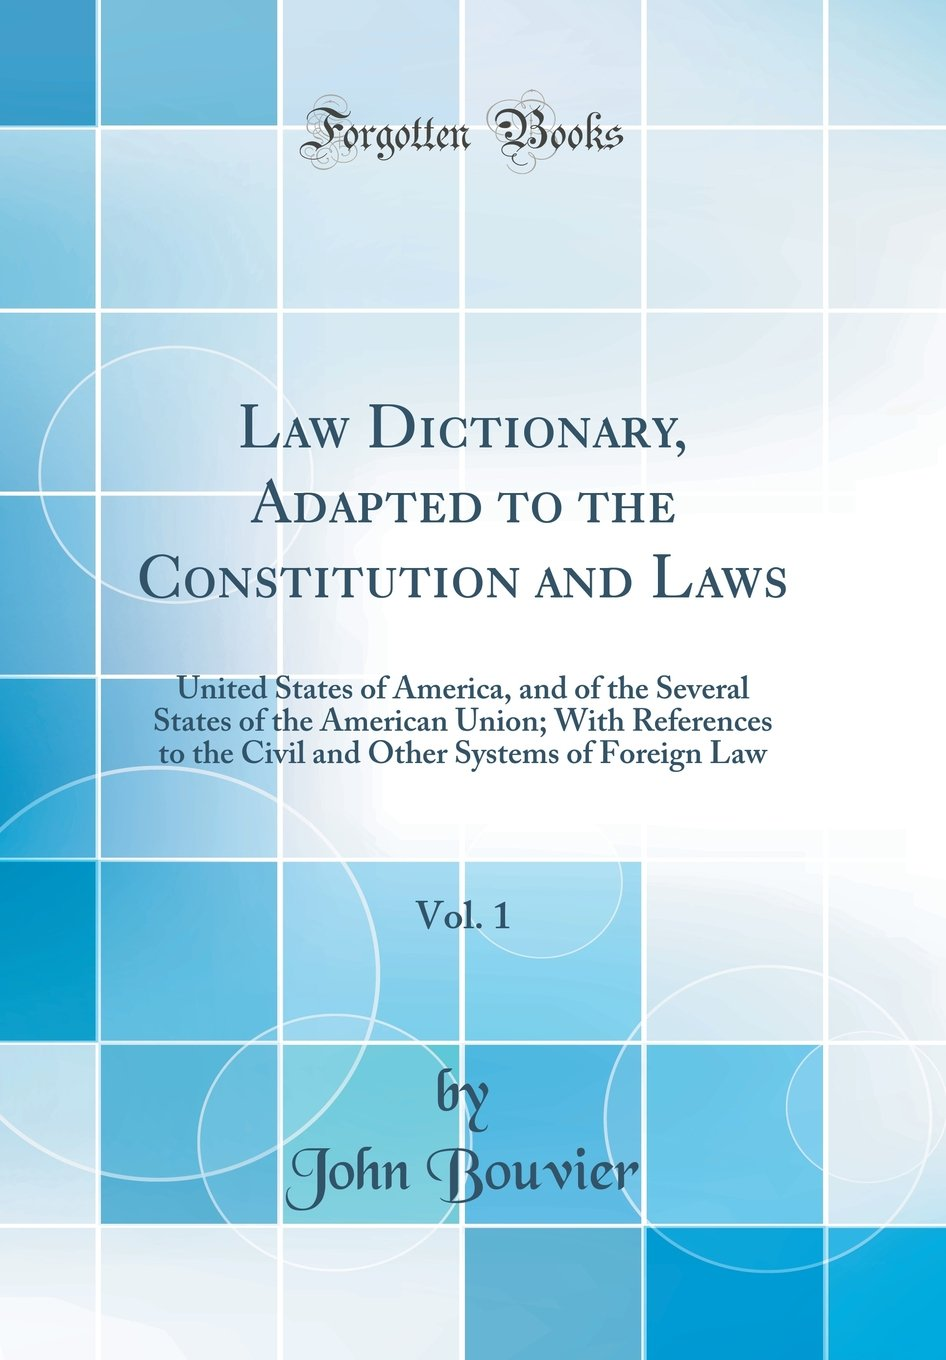 Download Law Dictionary, Adapted to the Constitution and Laws, Vol. 1: United States of America, and of the Several States of the American Union; With ... Systems of Foreign Law (Classic Reprint) PDF